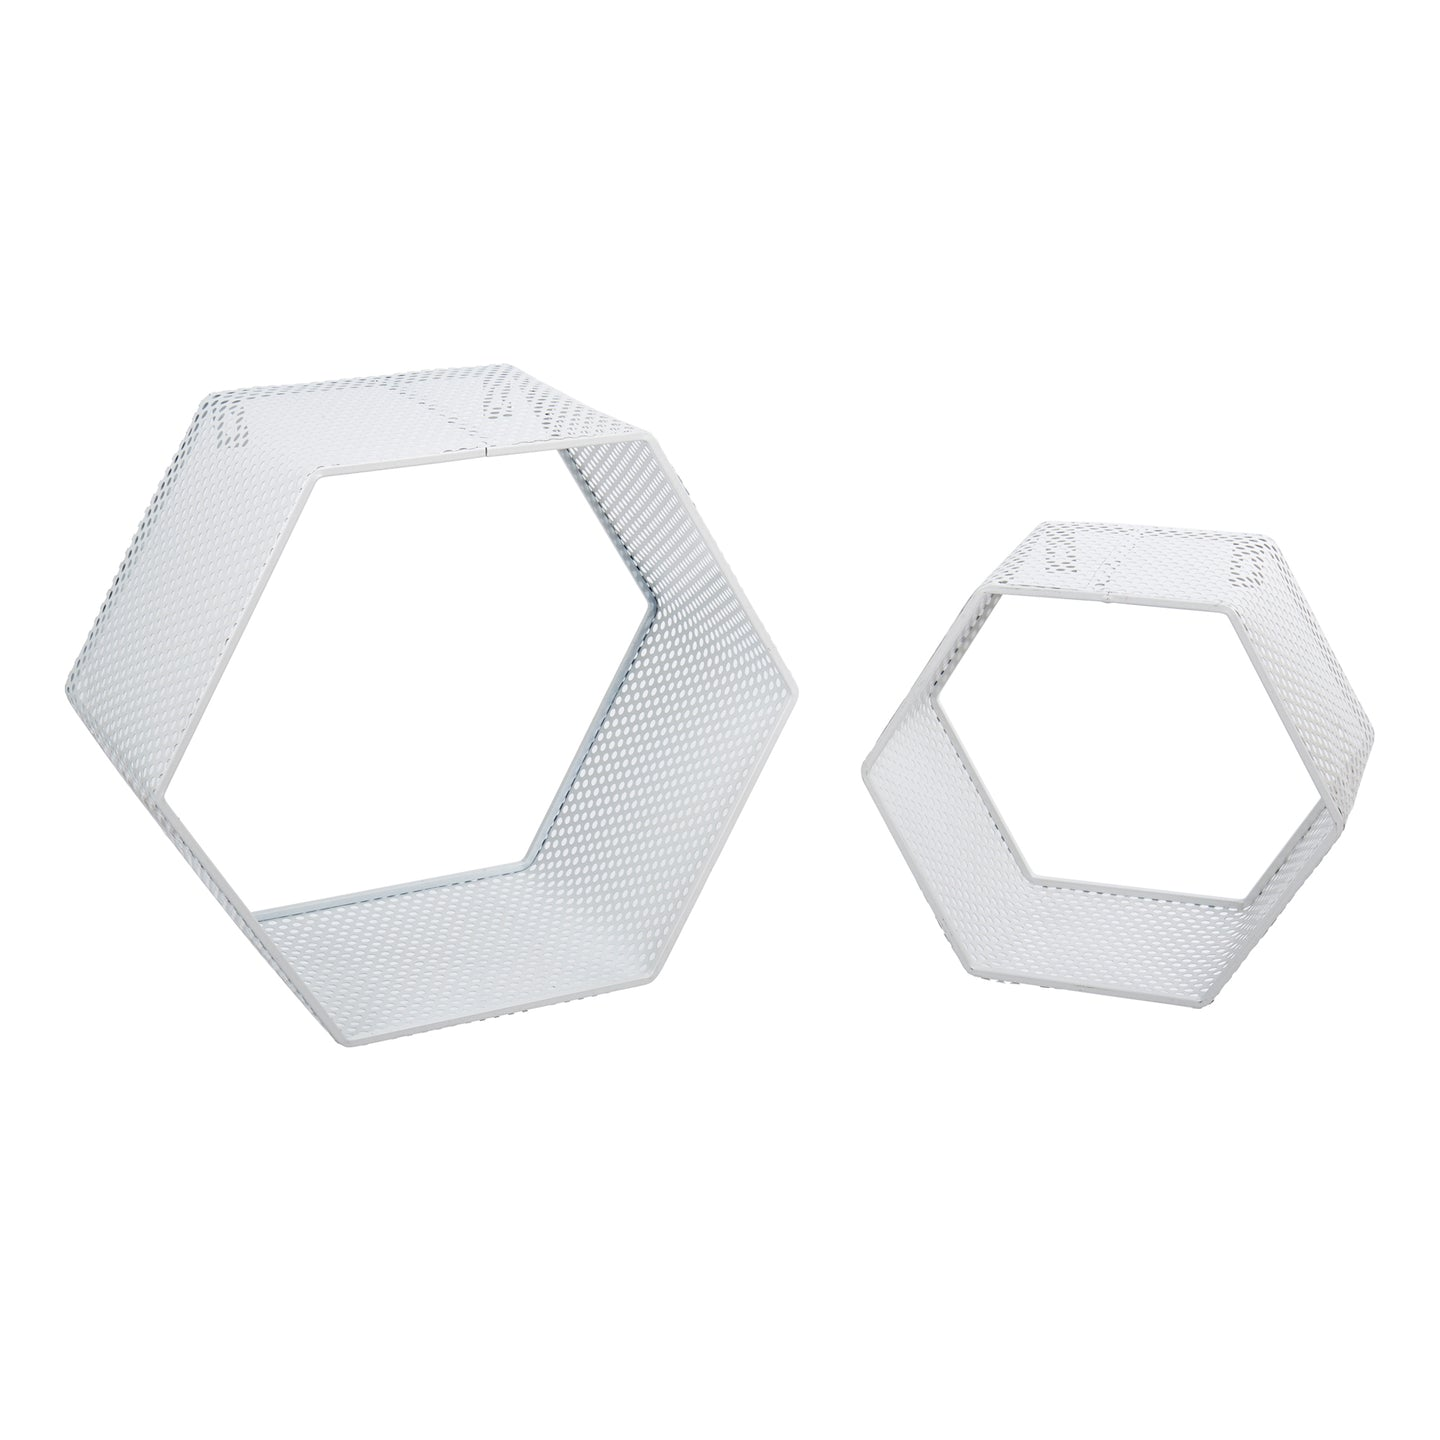 Hexagon Mesh Wall Cubby Set/2